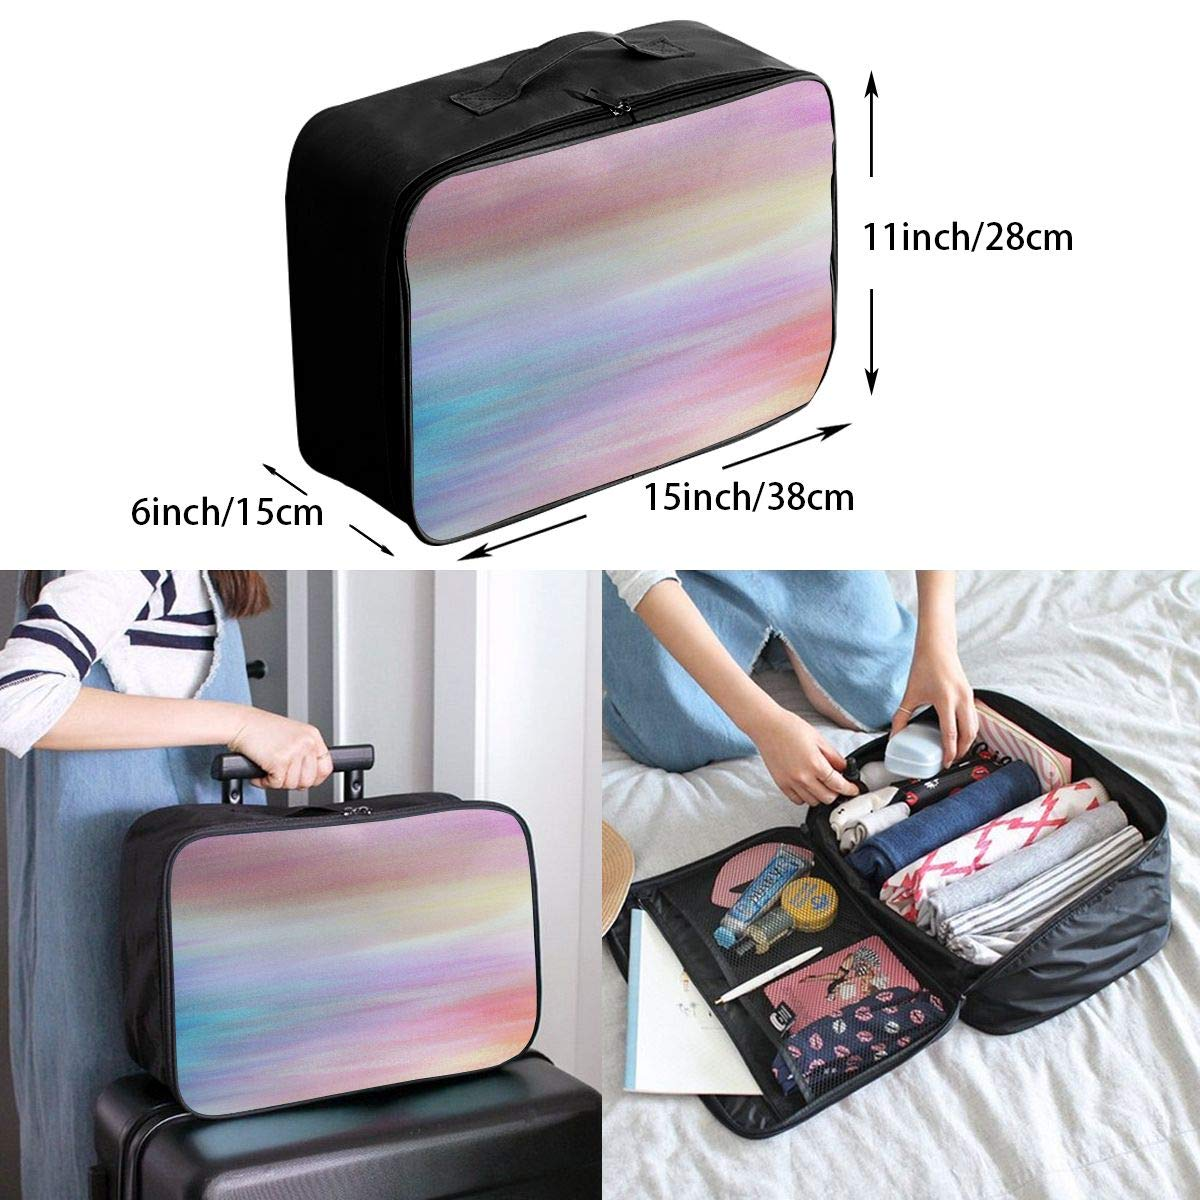 Abstract Watercolor Design Travel Lightweight Waterproof Foldable Storage Carry Luggage Large Capacity Portable Luggage Bag Duffel Bag